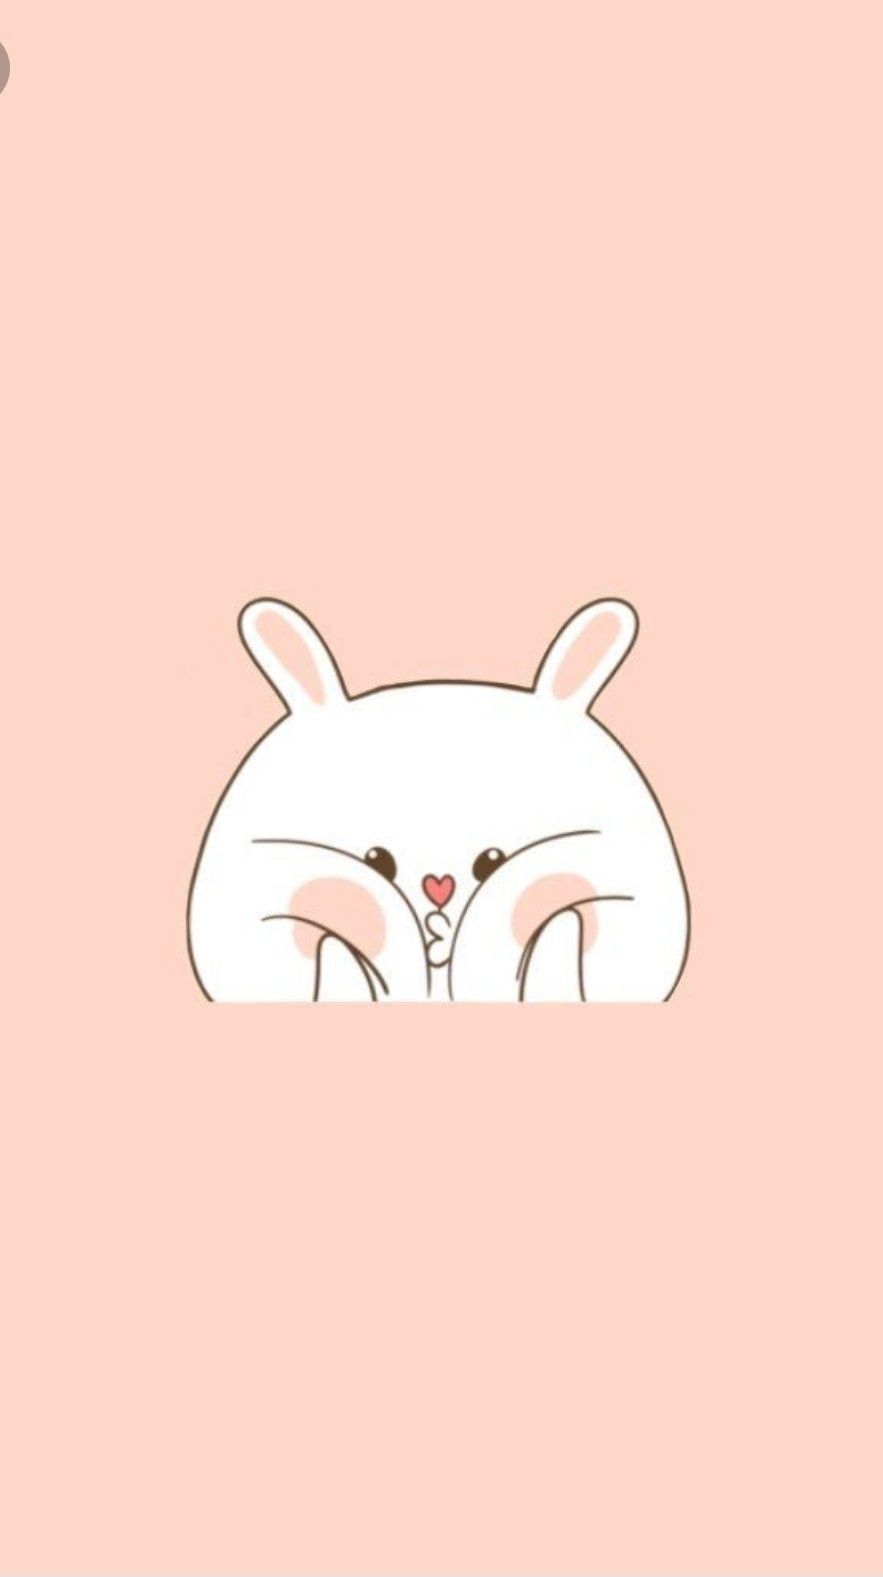 Cute Kawaii Pink Background With Squishy Bunny In 2019 Intended For Cartoon Kawaii Wallpapers In 2020 Cute Cartoon Wallpapers Cute Wallpapers